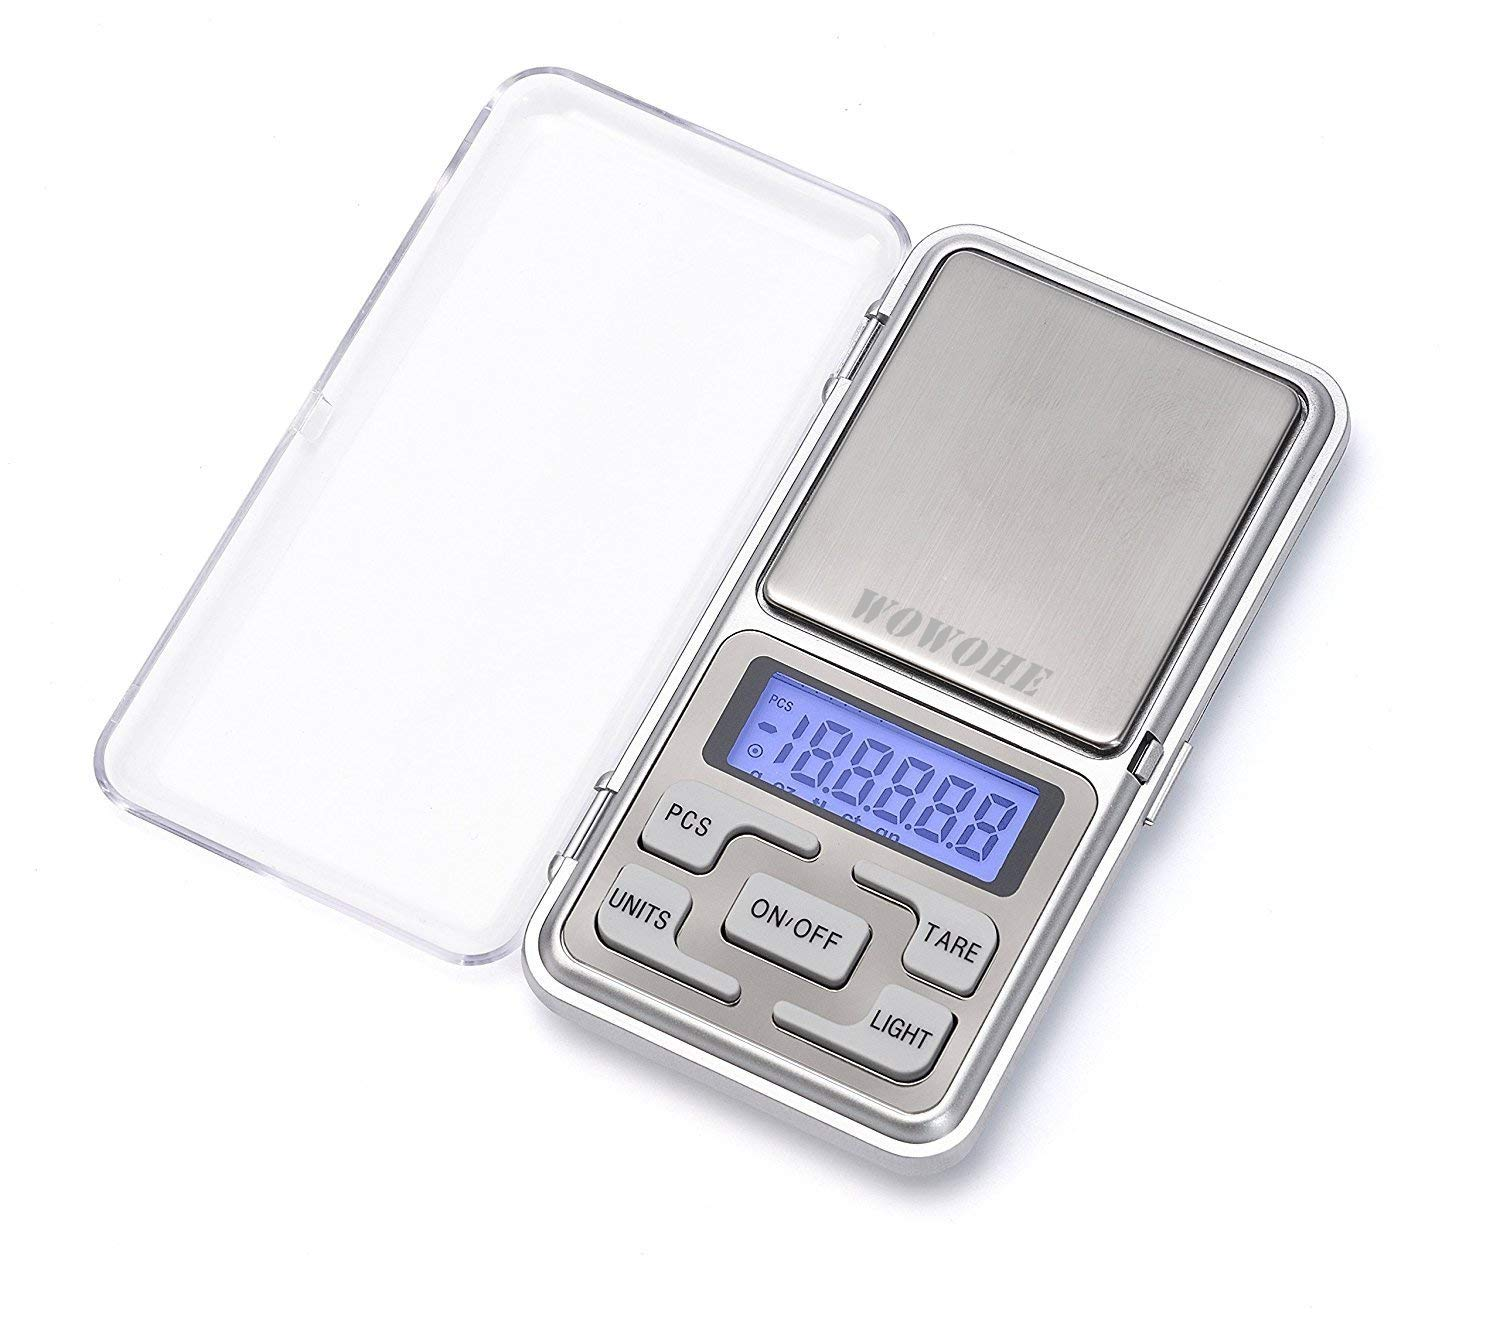 WOWOHE Digital Pocket Scales Gram Food Scale Kitchen Portable Scale Small Mini Cooking Scale Digital Weight Grams Accuracy 0.01g Capacity 500g